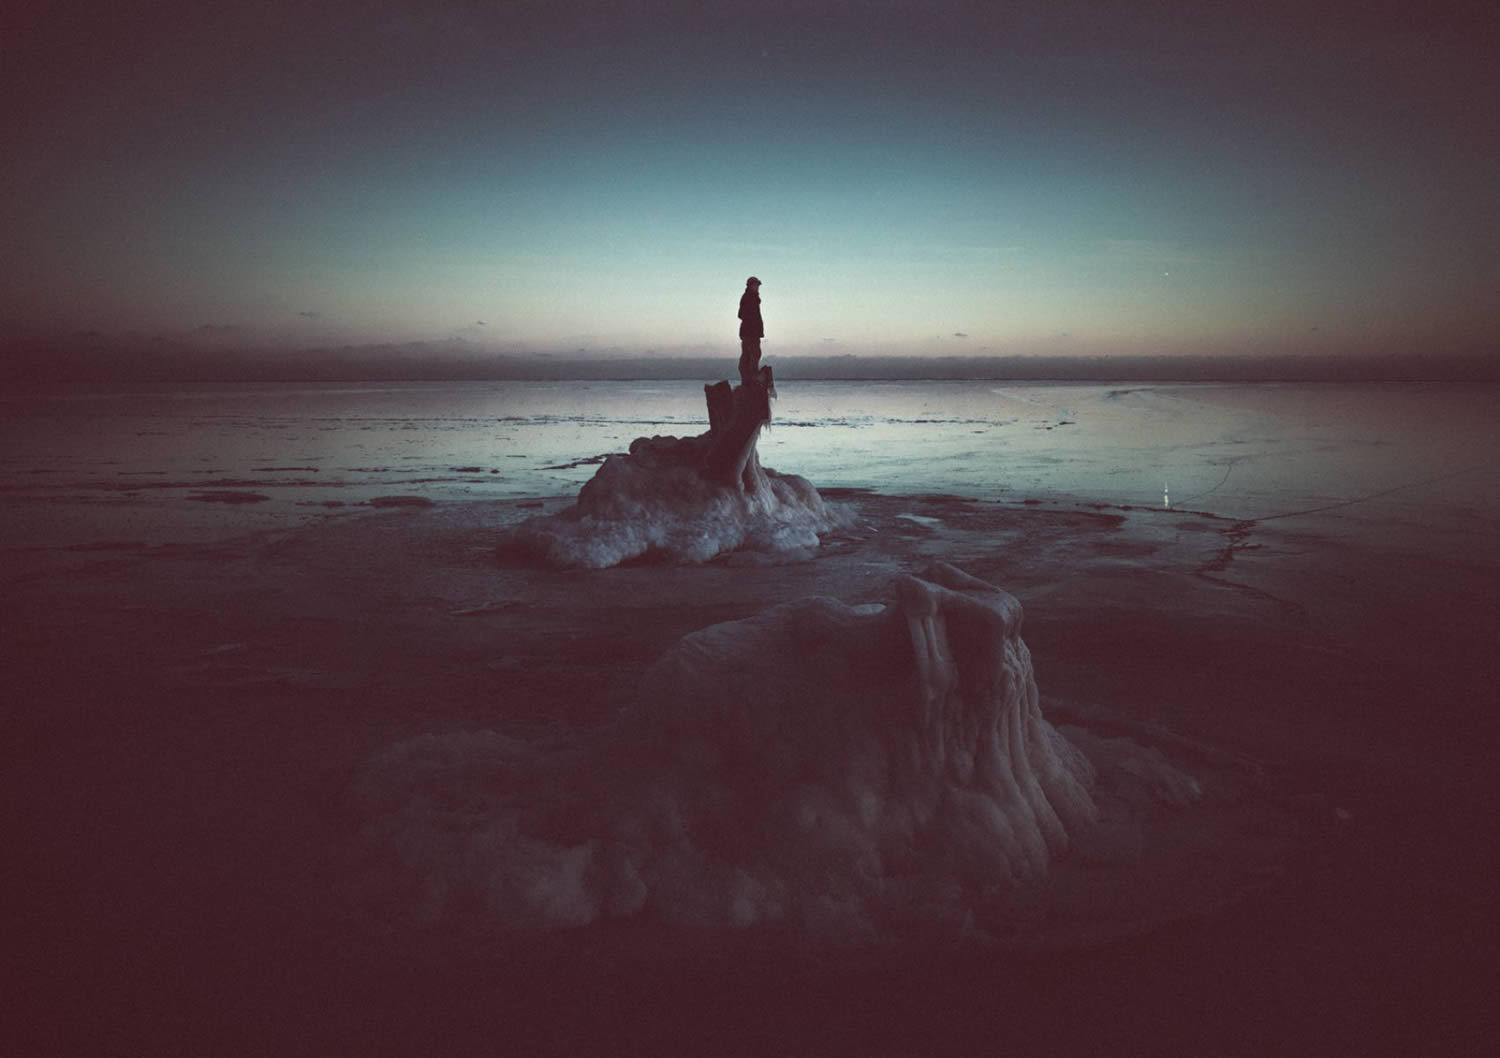 at the edge of the world,Reuben Wu